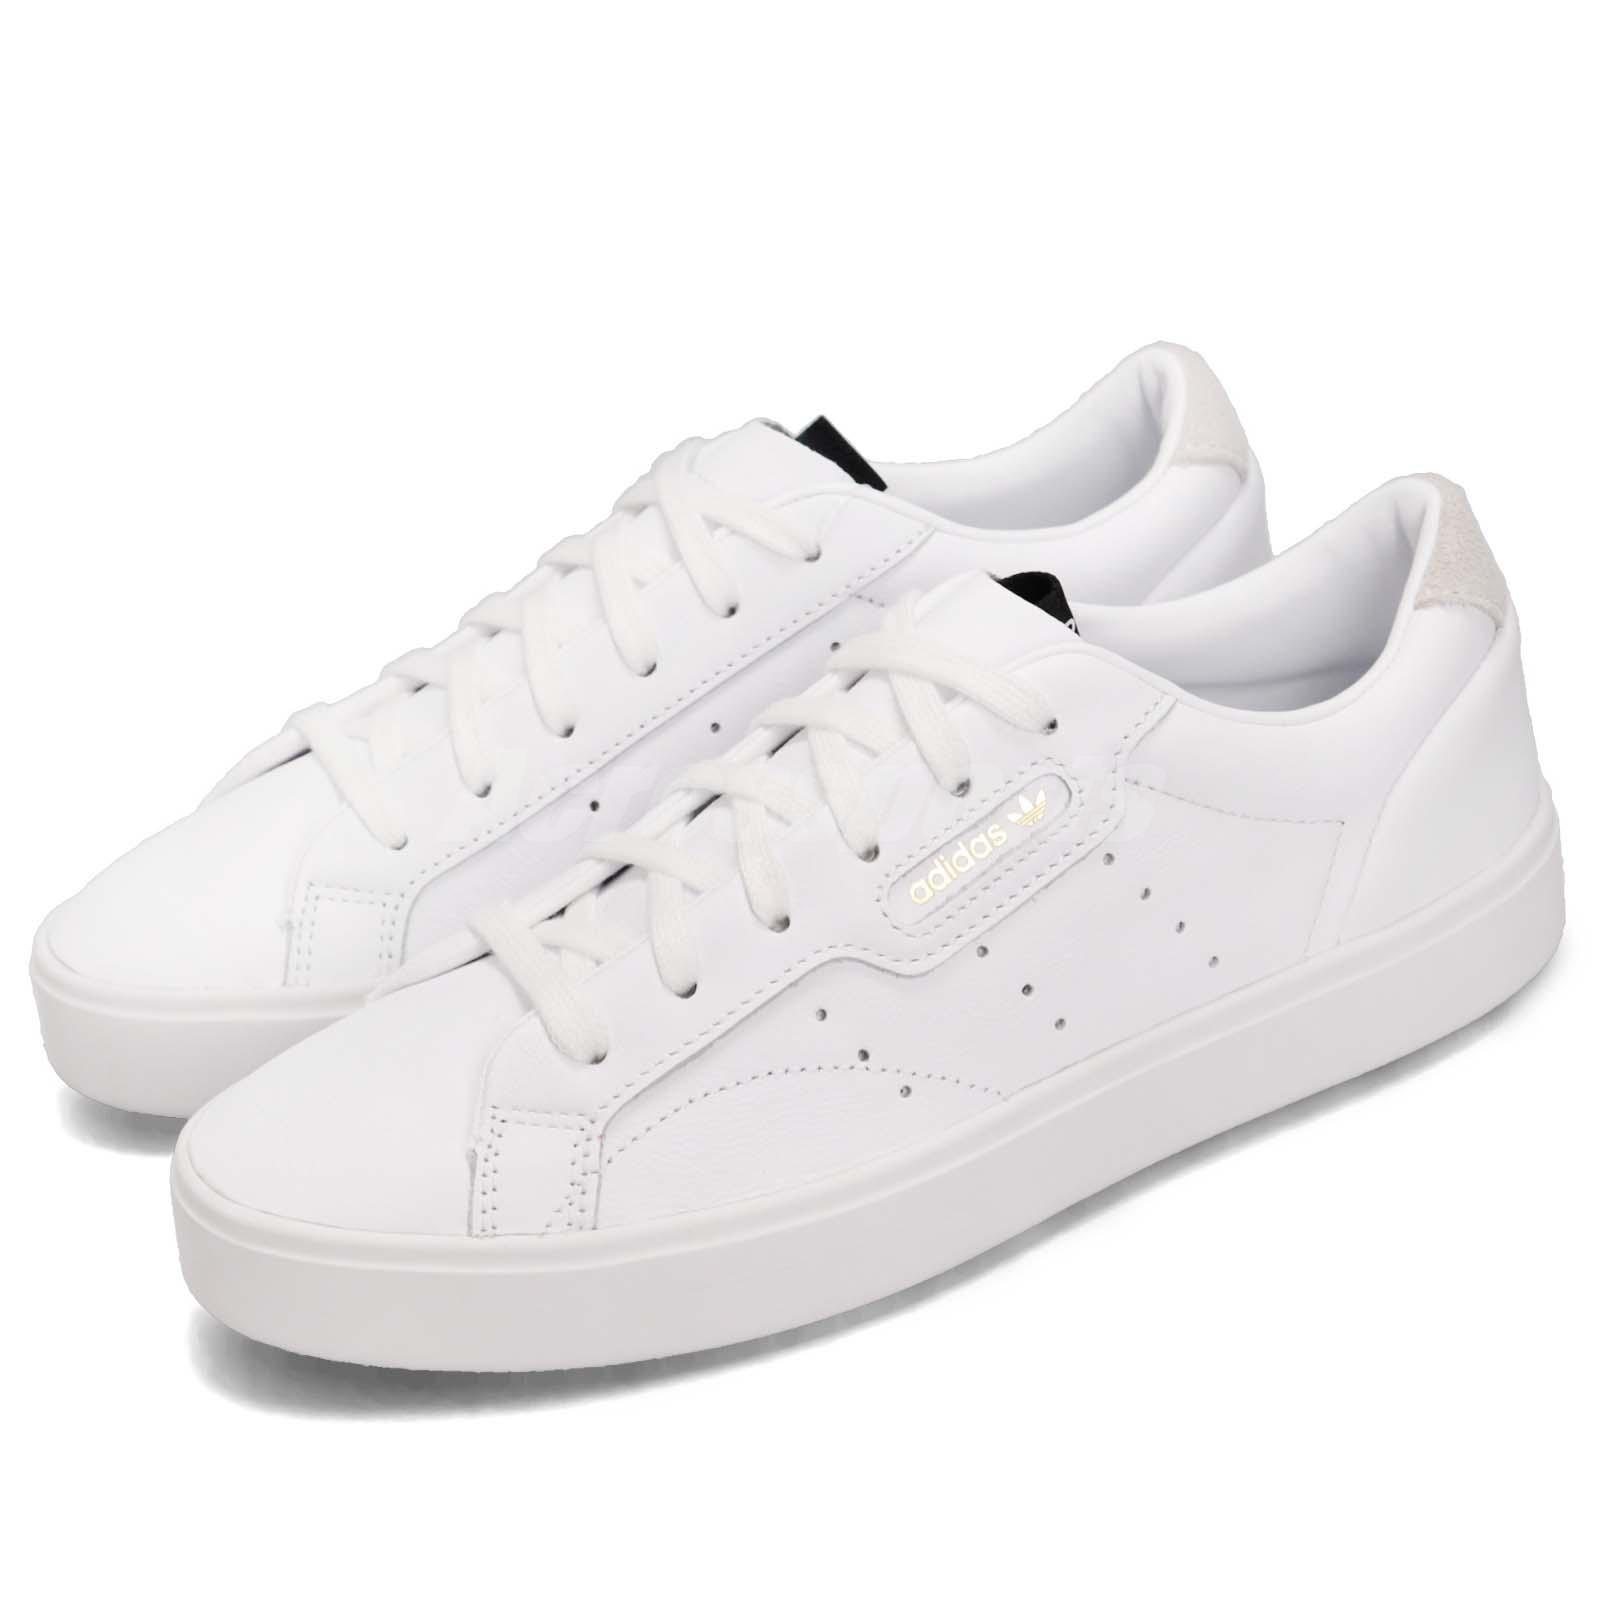 Dettagli su adidas Originals SLEEK W White Gold Women Casual Lifestyle Shoes Sneakers DB3258